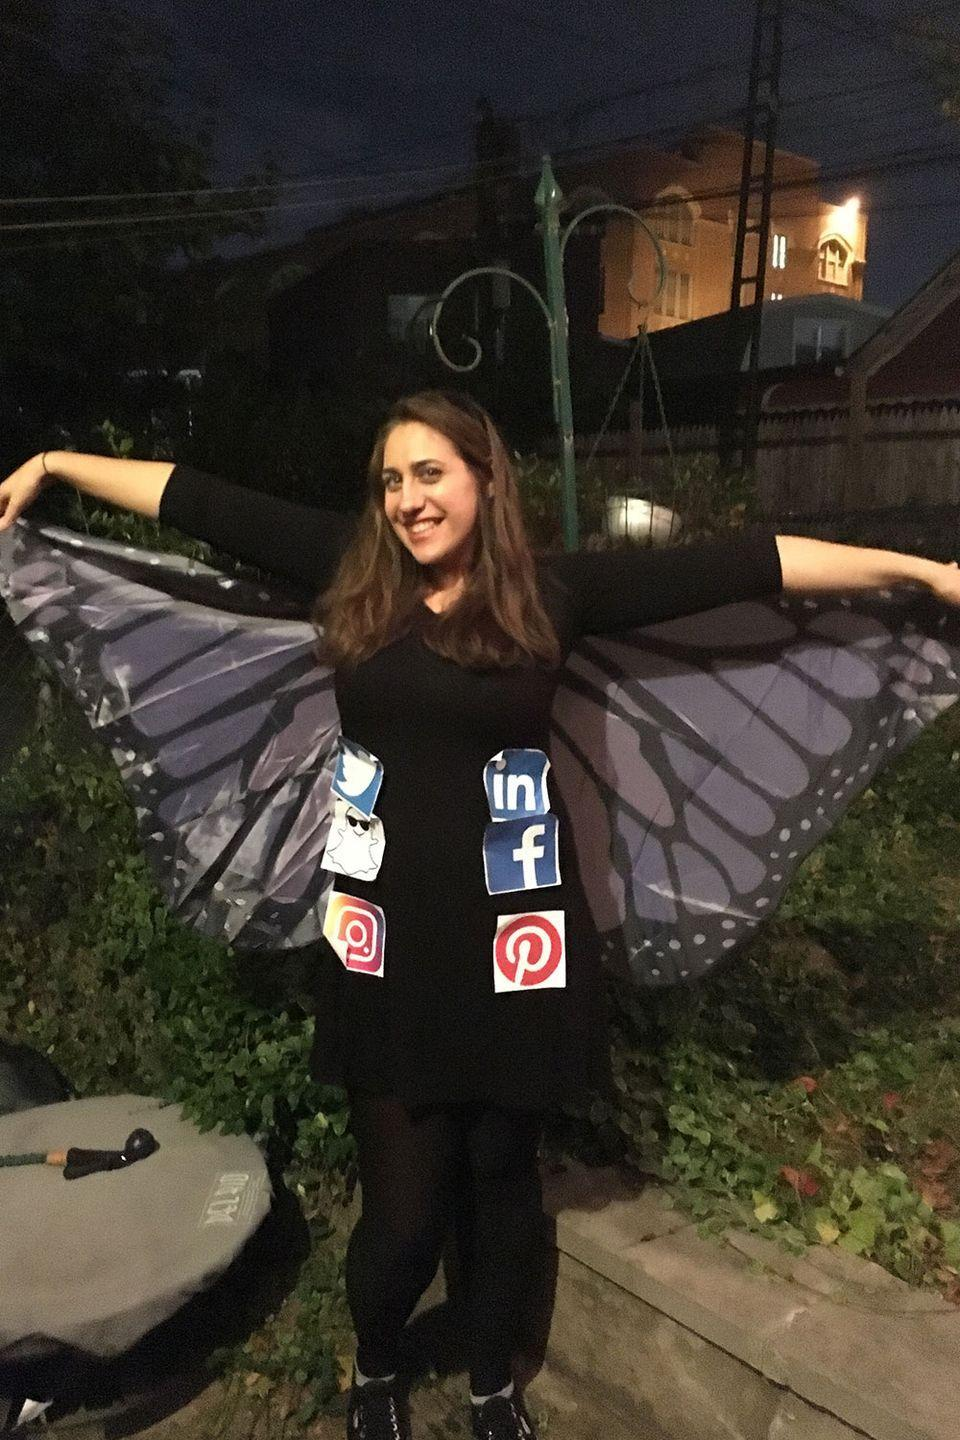 "<p>This social butterfly is about to take flight. </p><p><strong>RELATED:</strong> <a href=""https://www.goodhousekeeping.com/holidays/halloween-ideas/g23549593/meme-costumes/"" rel=""nofollow noopener"" target=""_blank"" data-ylk=""slk:13 Meme Costumes You Have to Try if You Love the Internet"" class=""link rapid-noclick-resp"">13 Meme Costumes You Have to Try if You Love the Internet</a></p>"